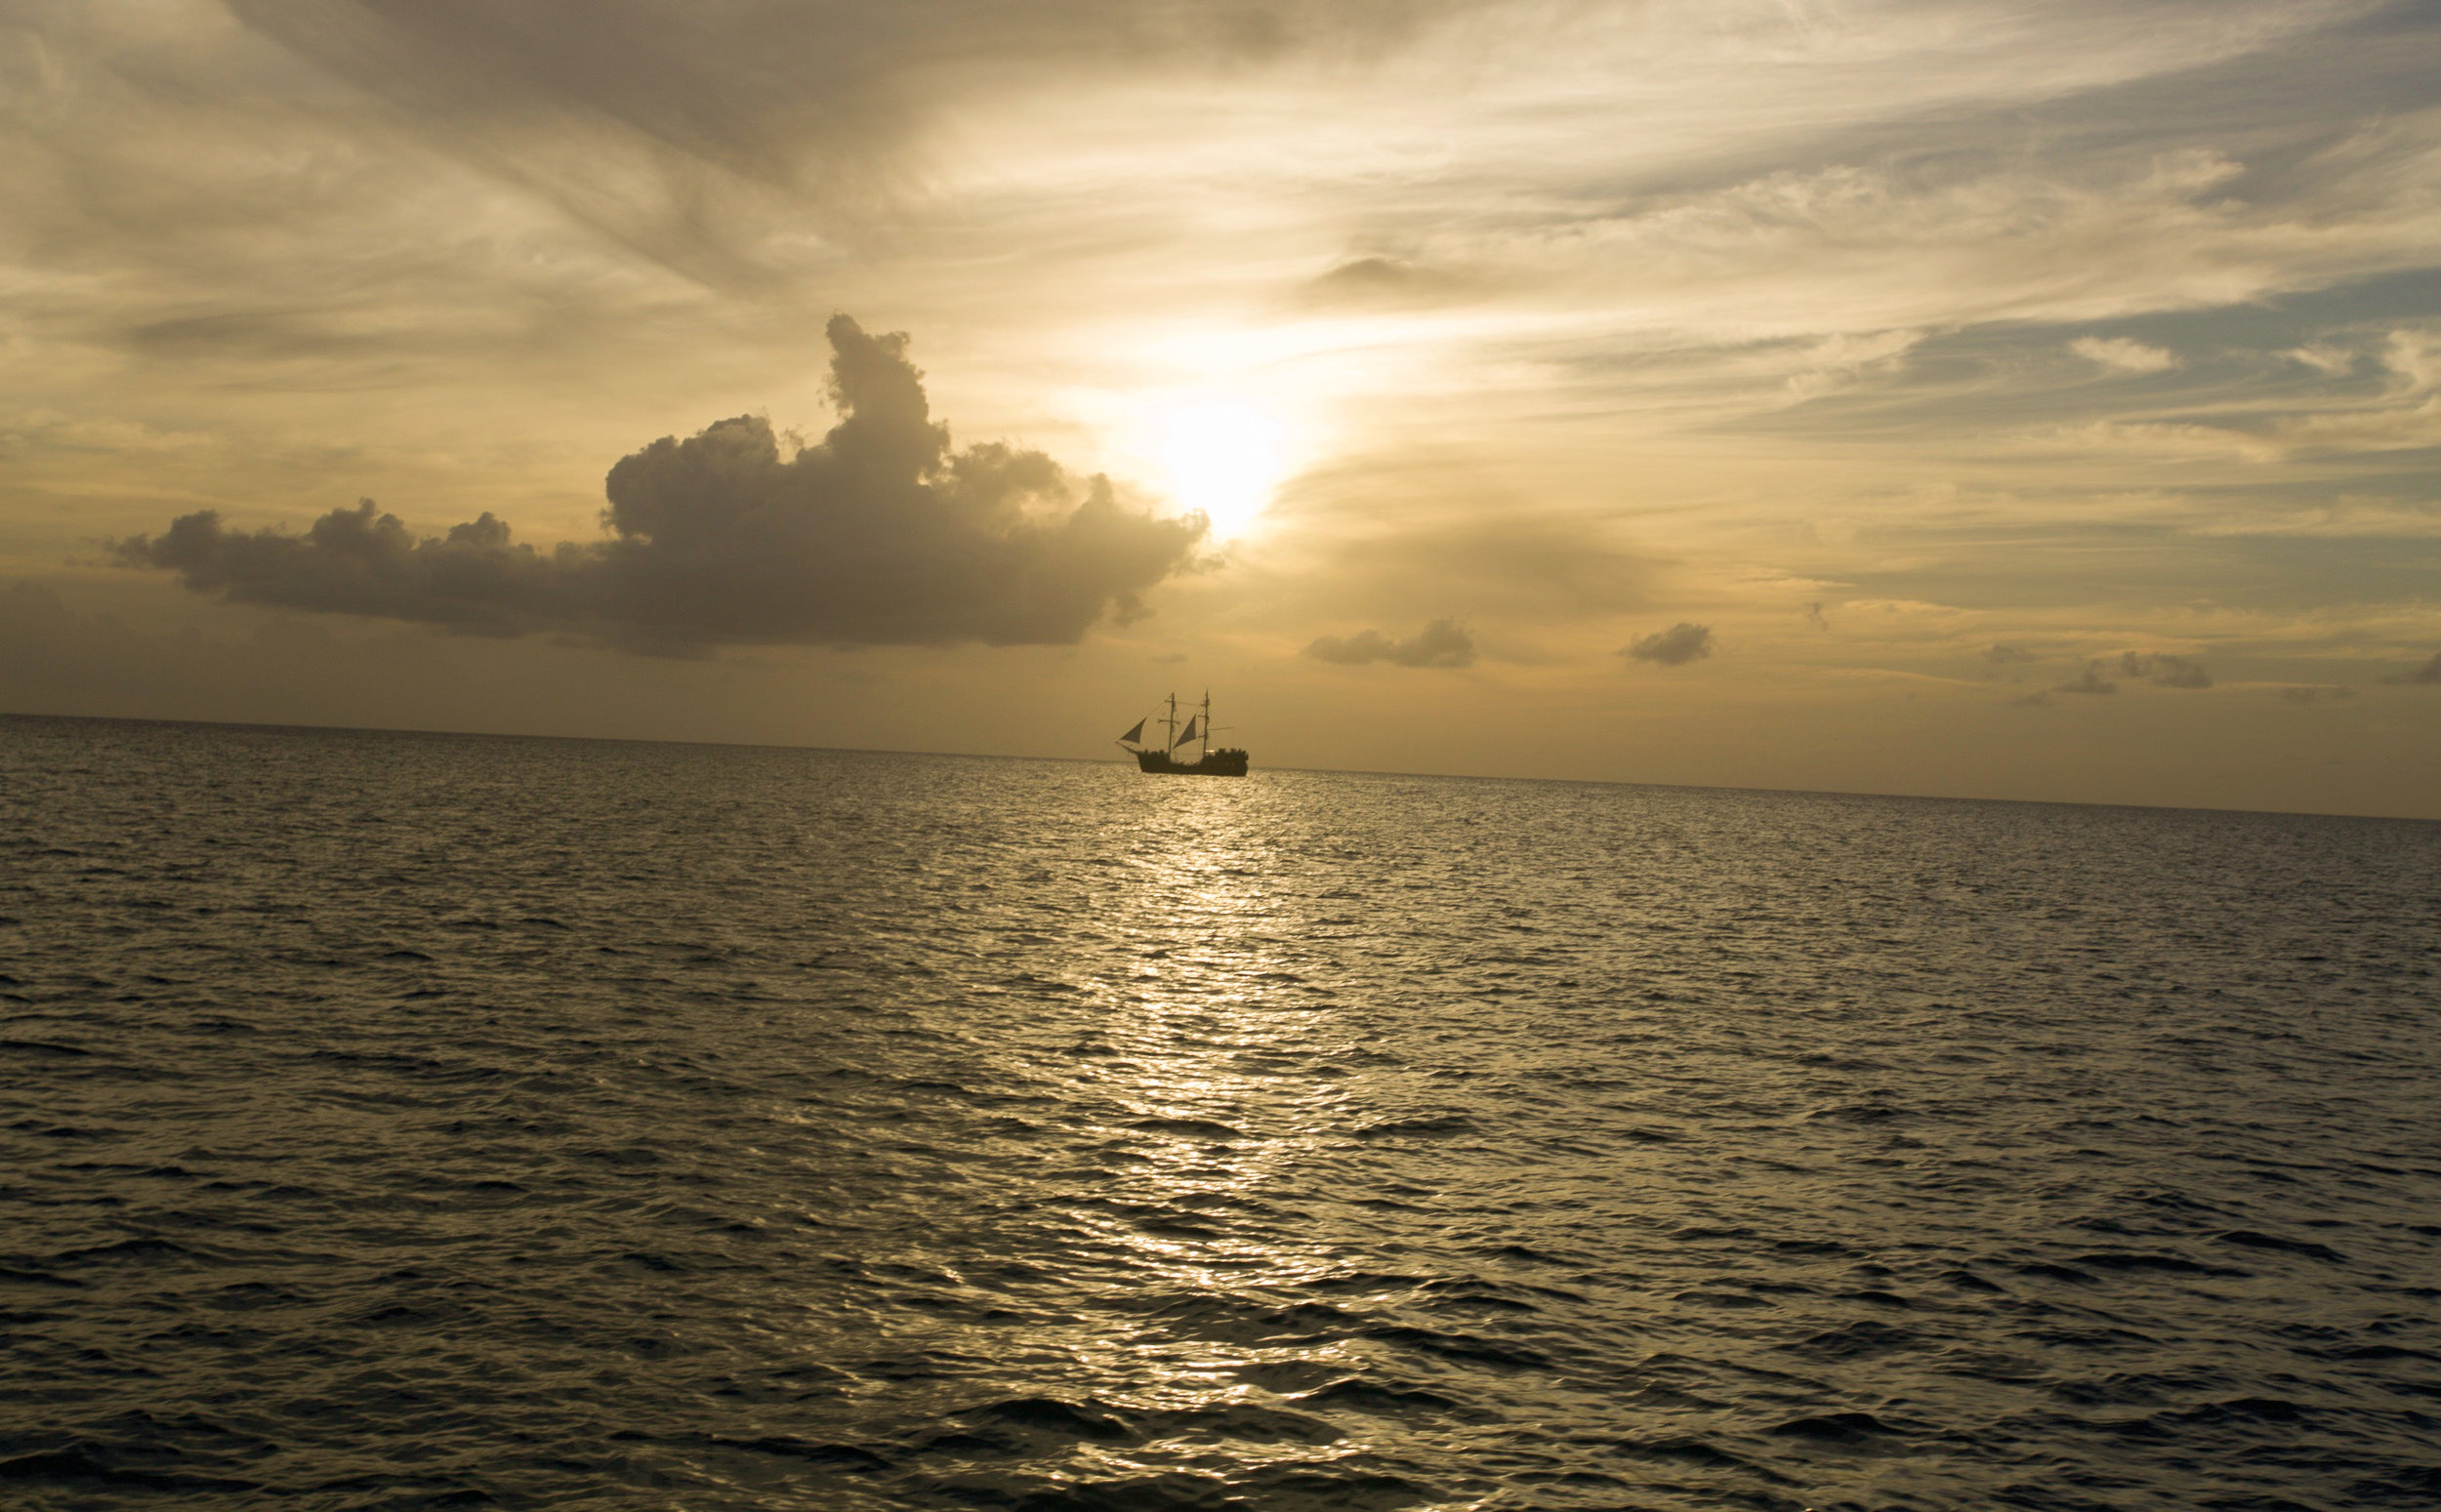 We watched the sun go down with the infamous Black Magic replica pirate ship sailing in the distance, they also provide cruises on the island, next time that's a must do! Photography Courtesy of The Aisle Photography